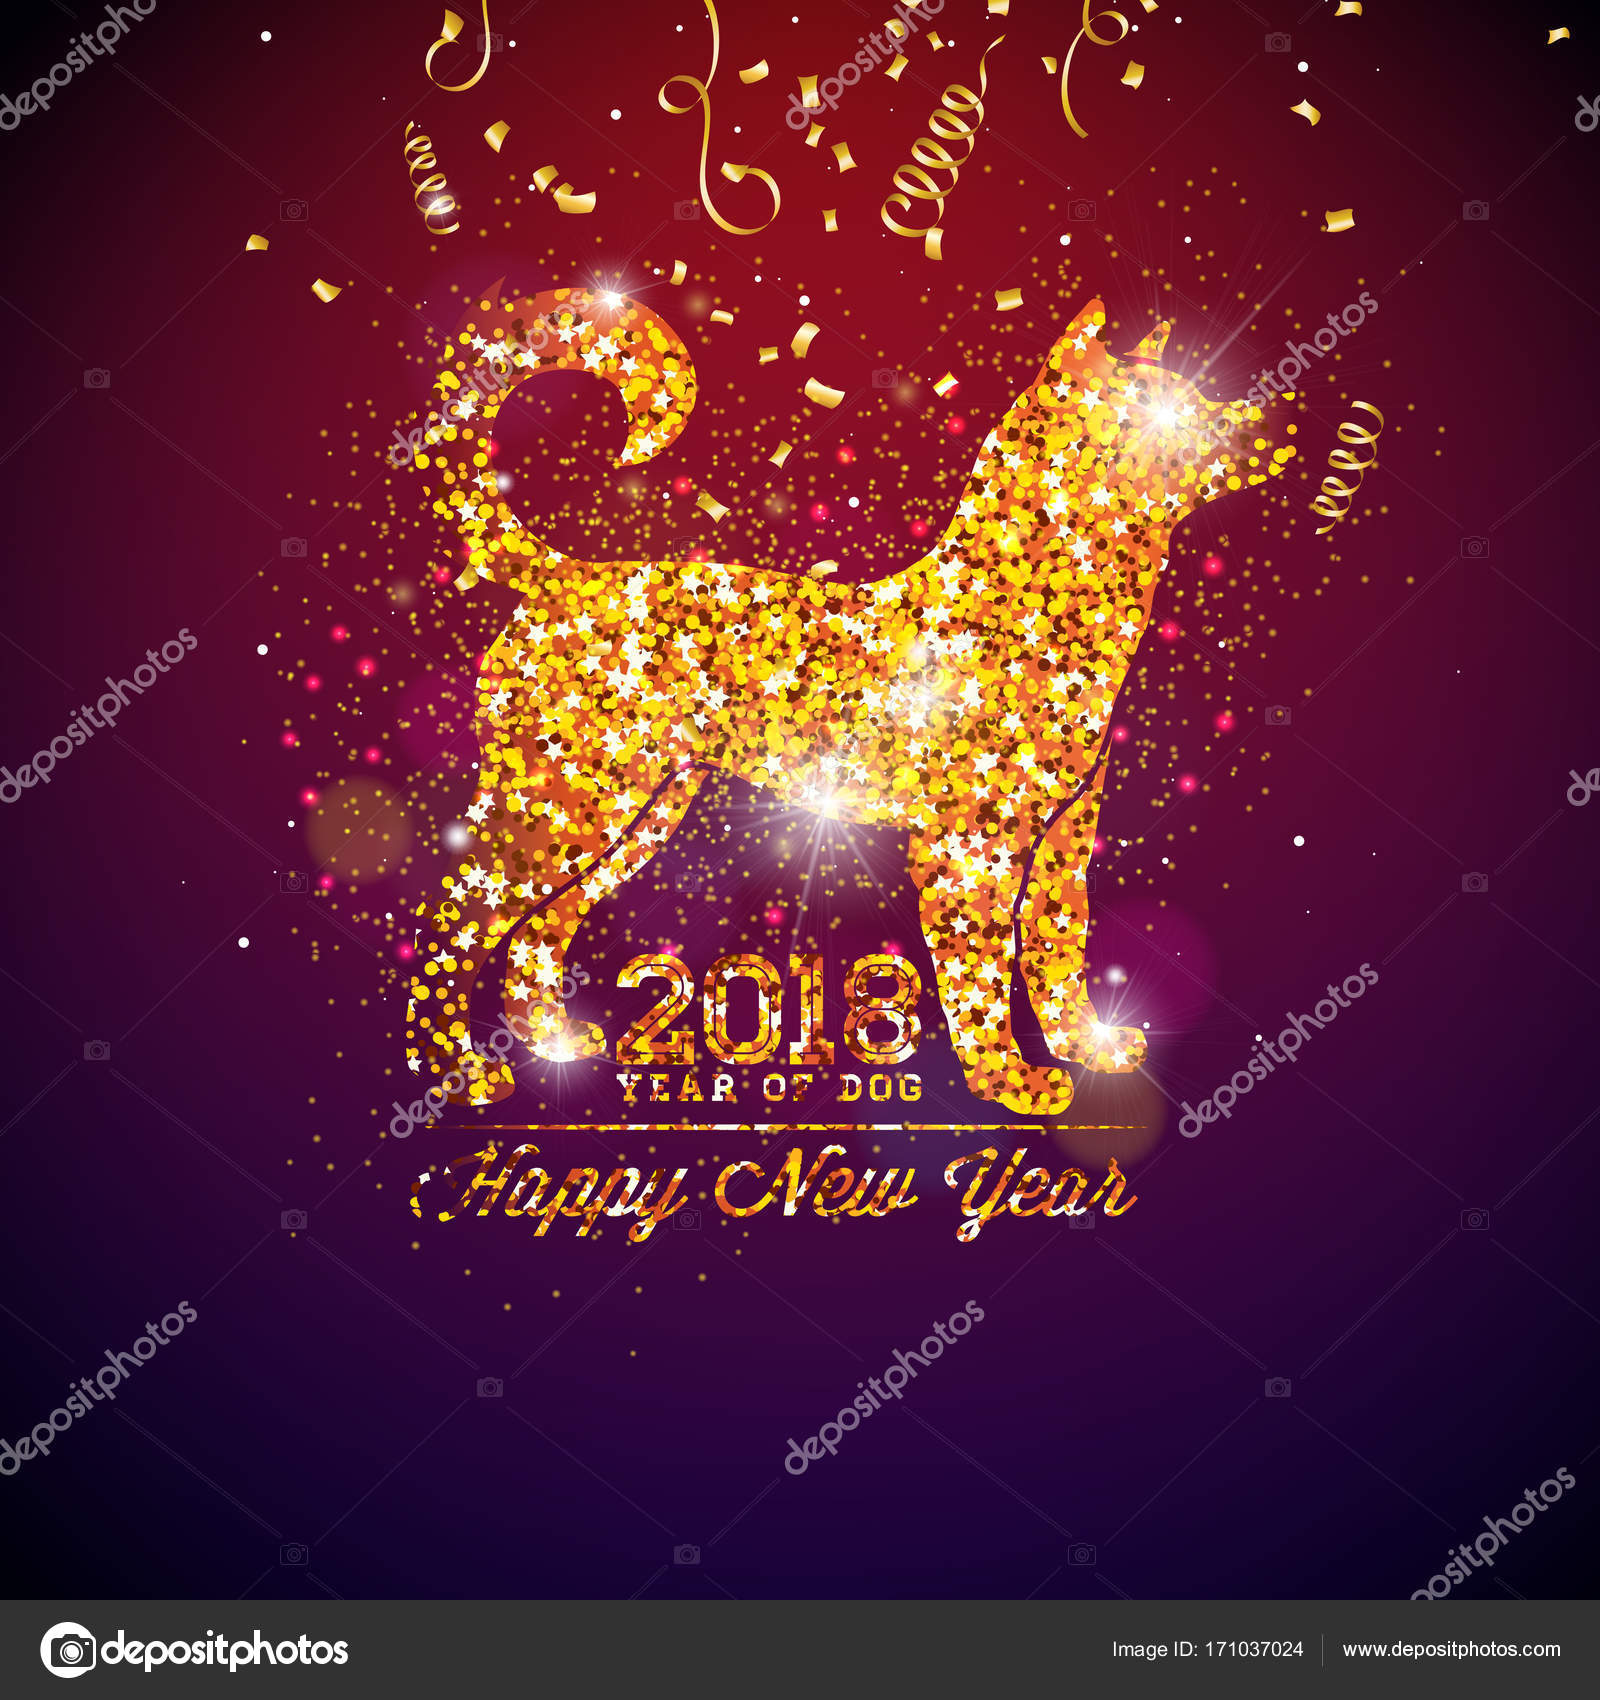 2018 chinese new year illustration with bright symbol on shiny celebration background year of the dog vector design vector by _articular_